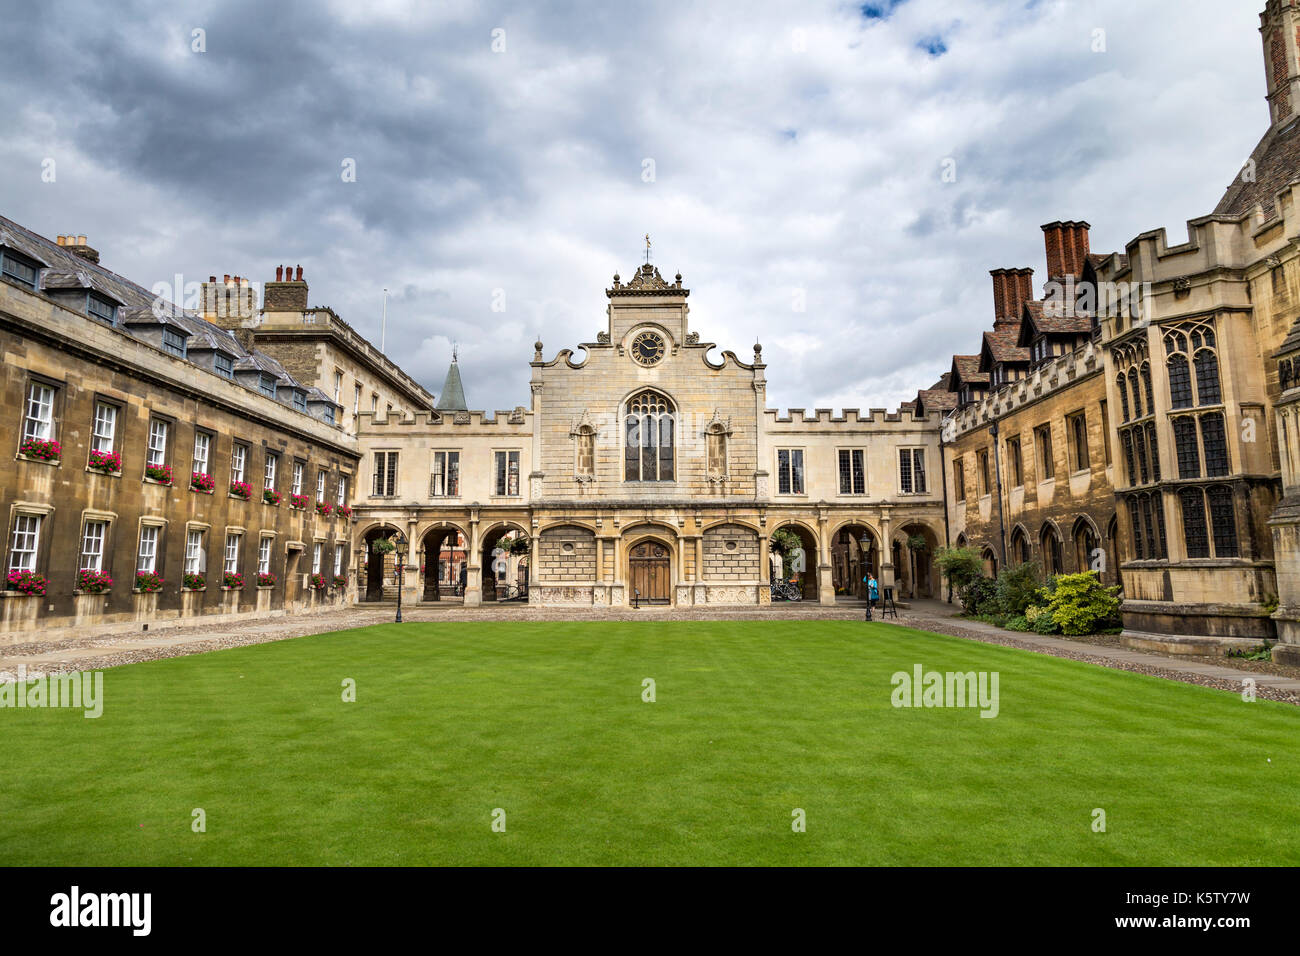 The Old Court of Peterhouse College, Cambridge, UK - Stock Image